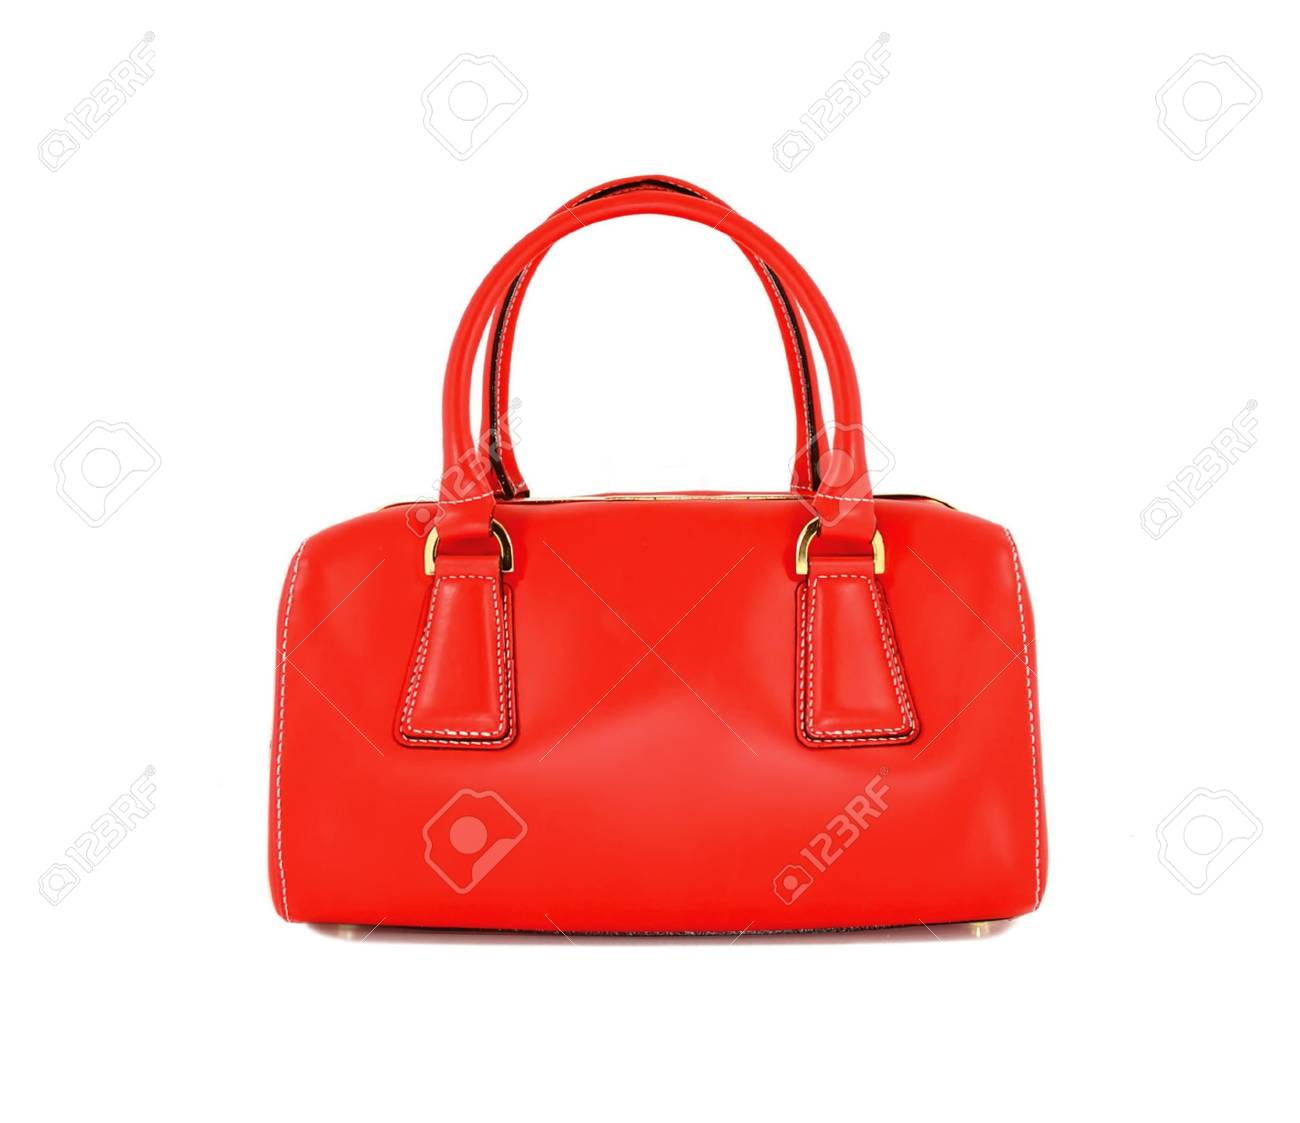 5361b70f11a14 Red women bag isolated on white background Stock Photo - 70978294